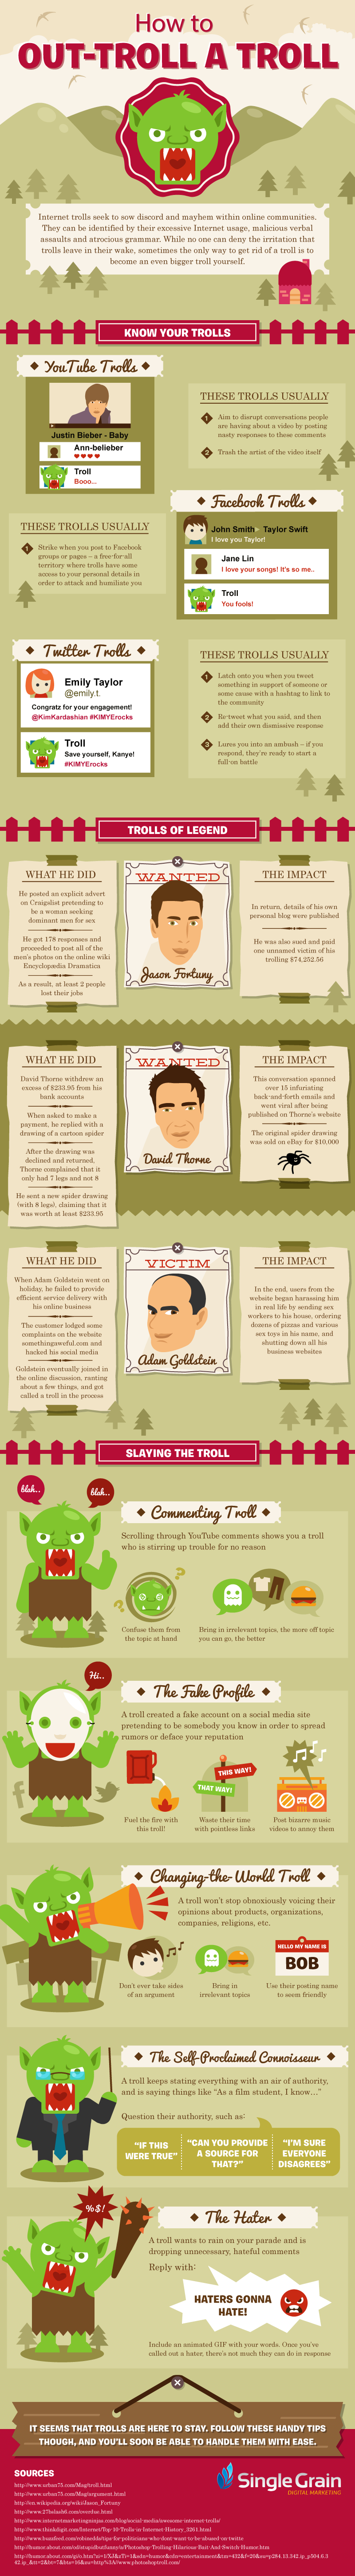 How To Out-Troll a Troll Infographic